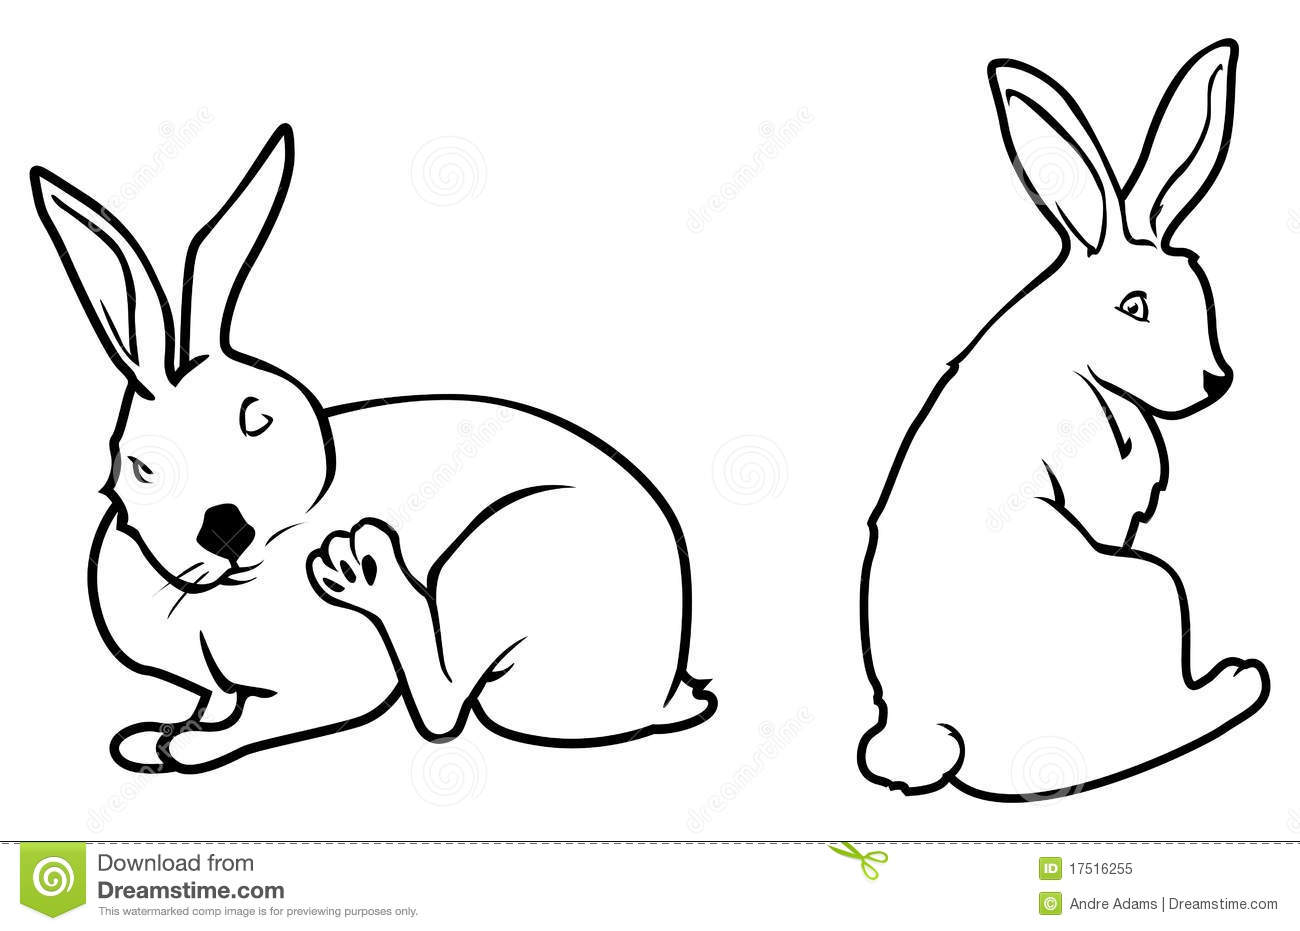 Bunny Outlines Royalty Free Stock Photo - Image: 17516255